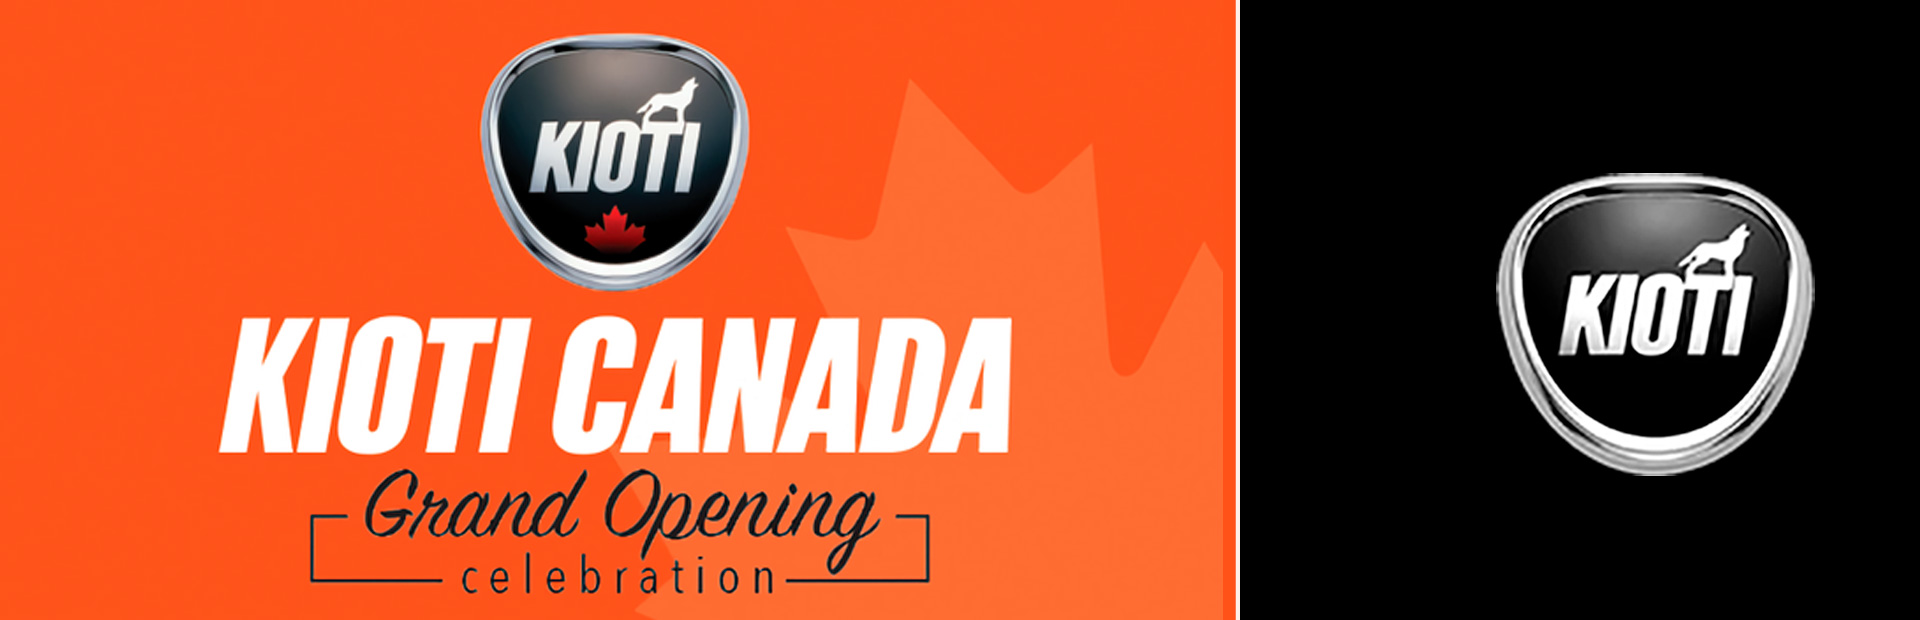 KIOTI: Canadian Grand Opening Celebration